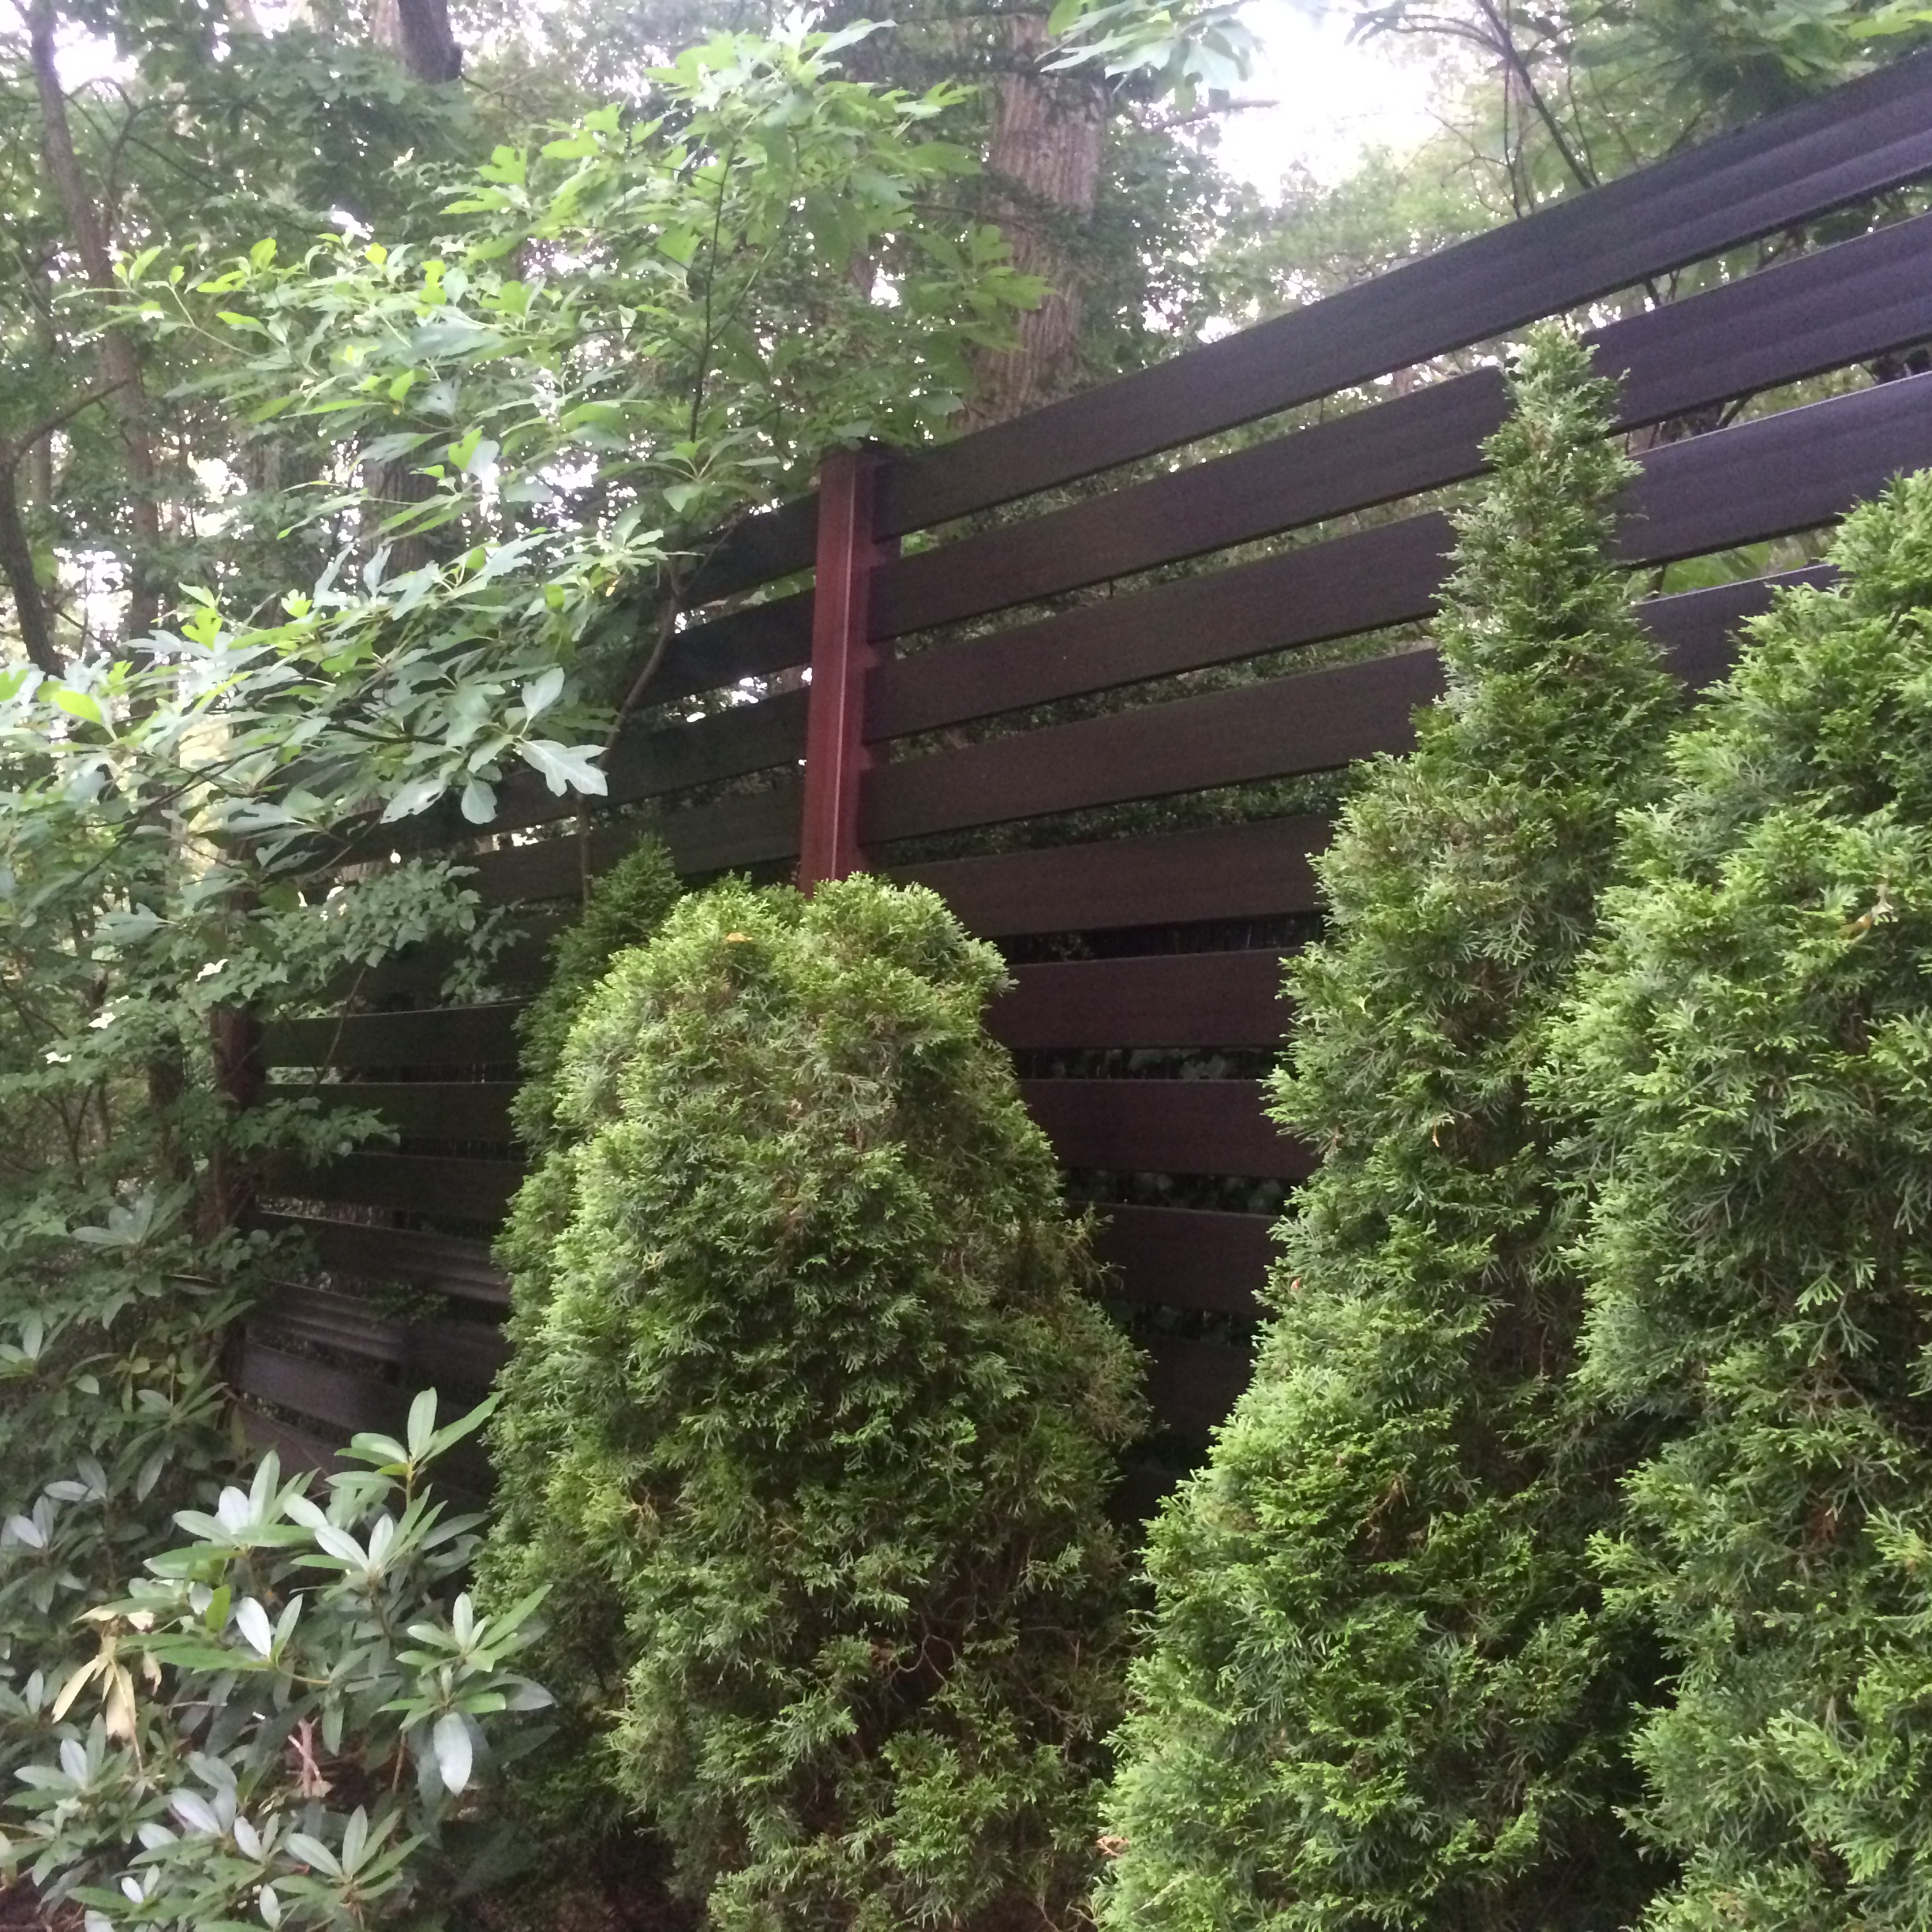 Professional privacy fence landscape design company in Long Island, NY